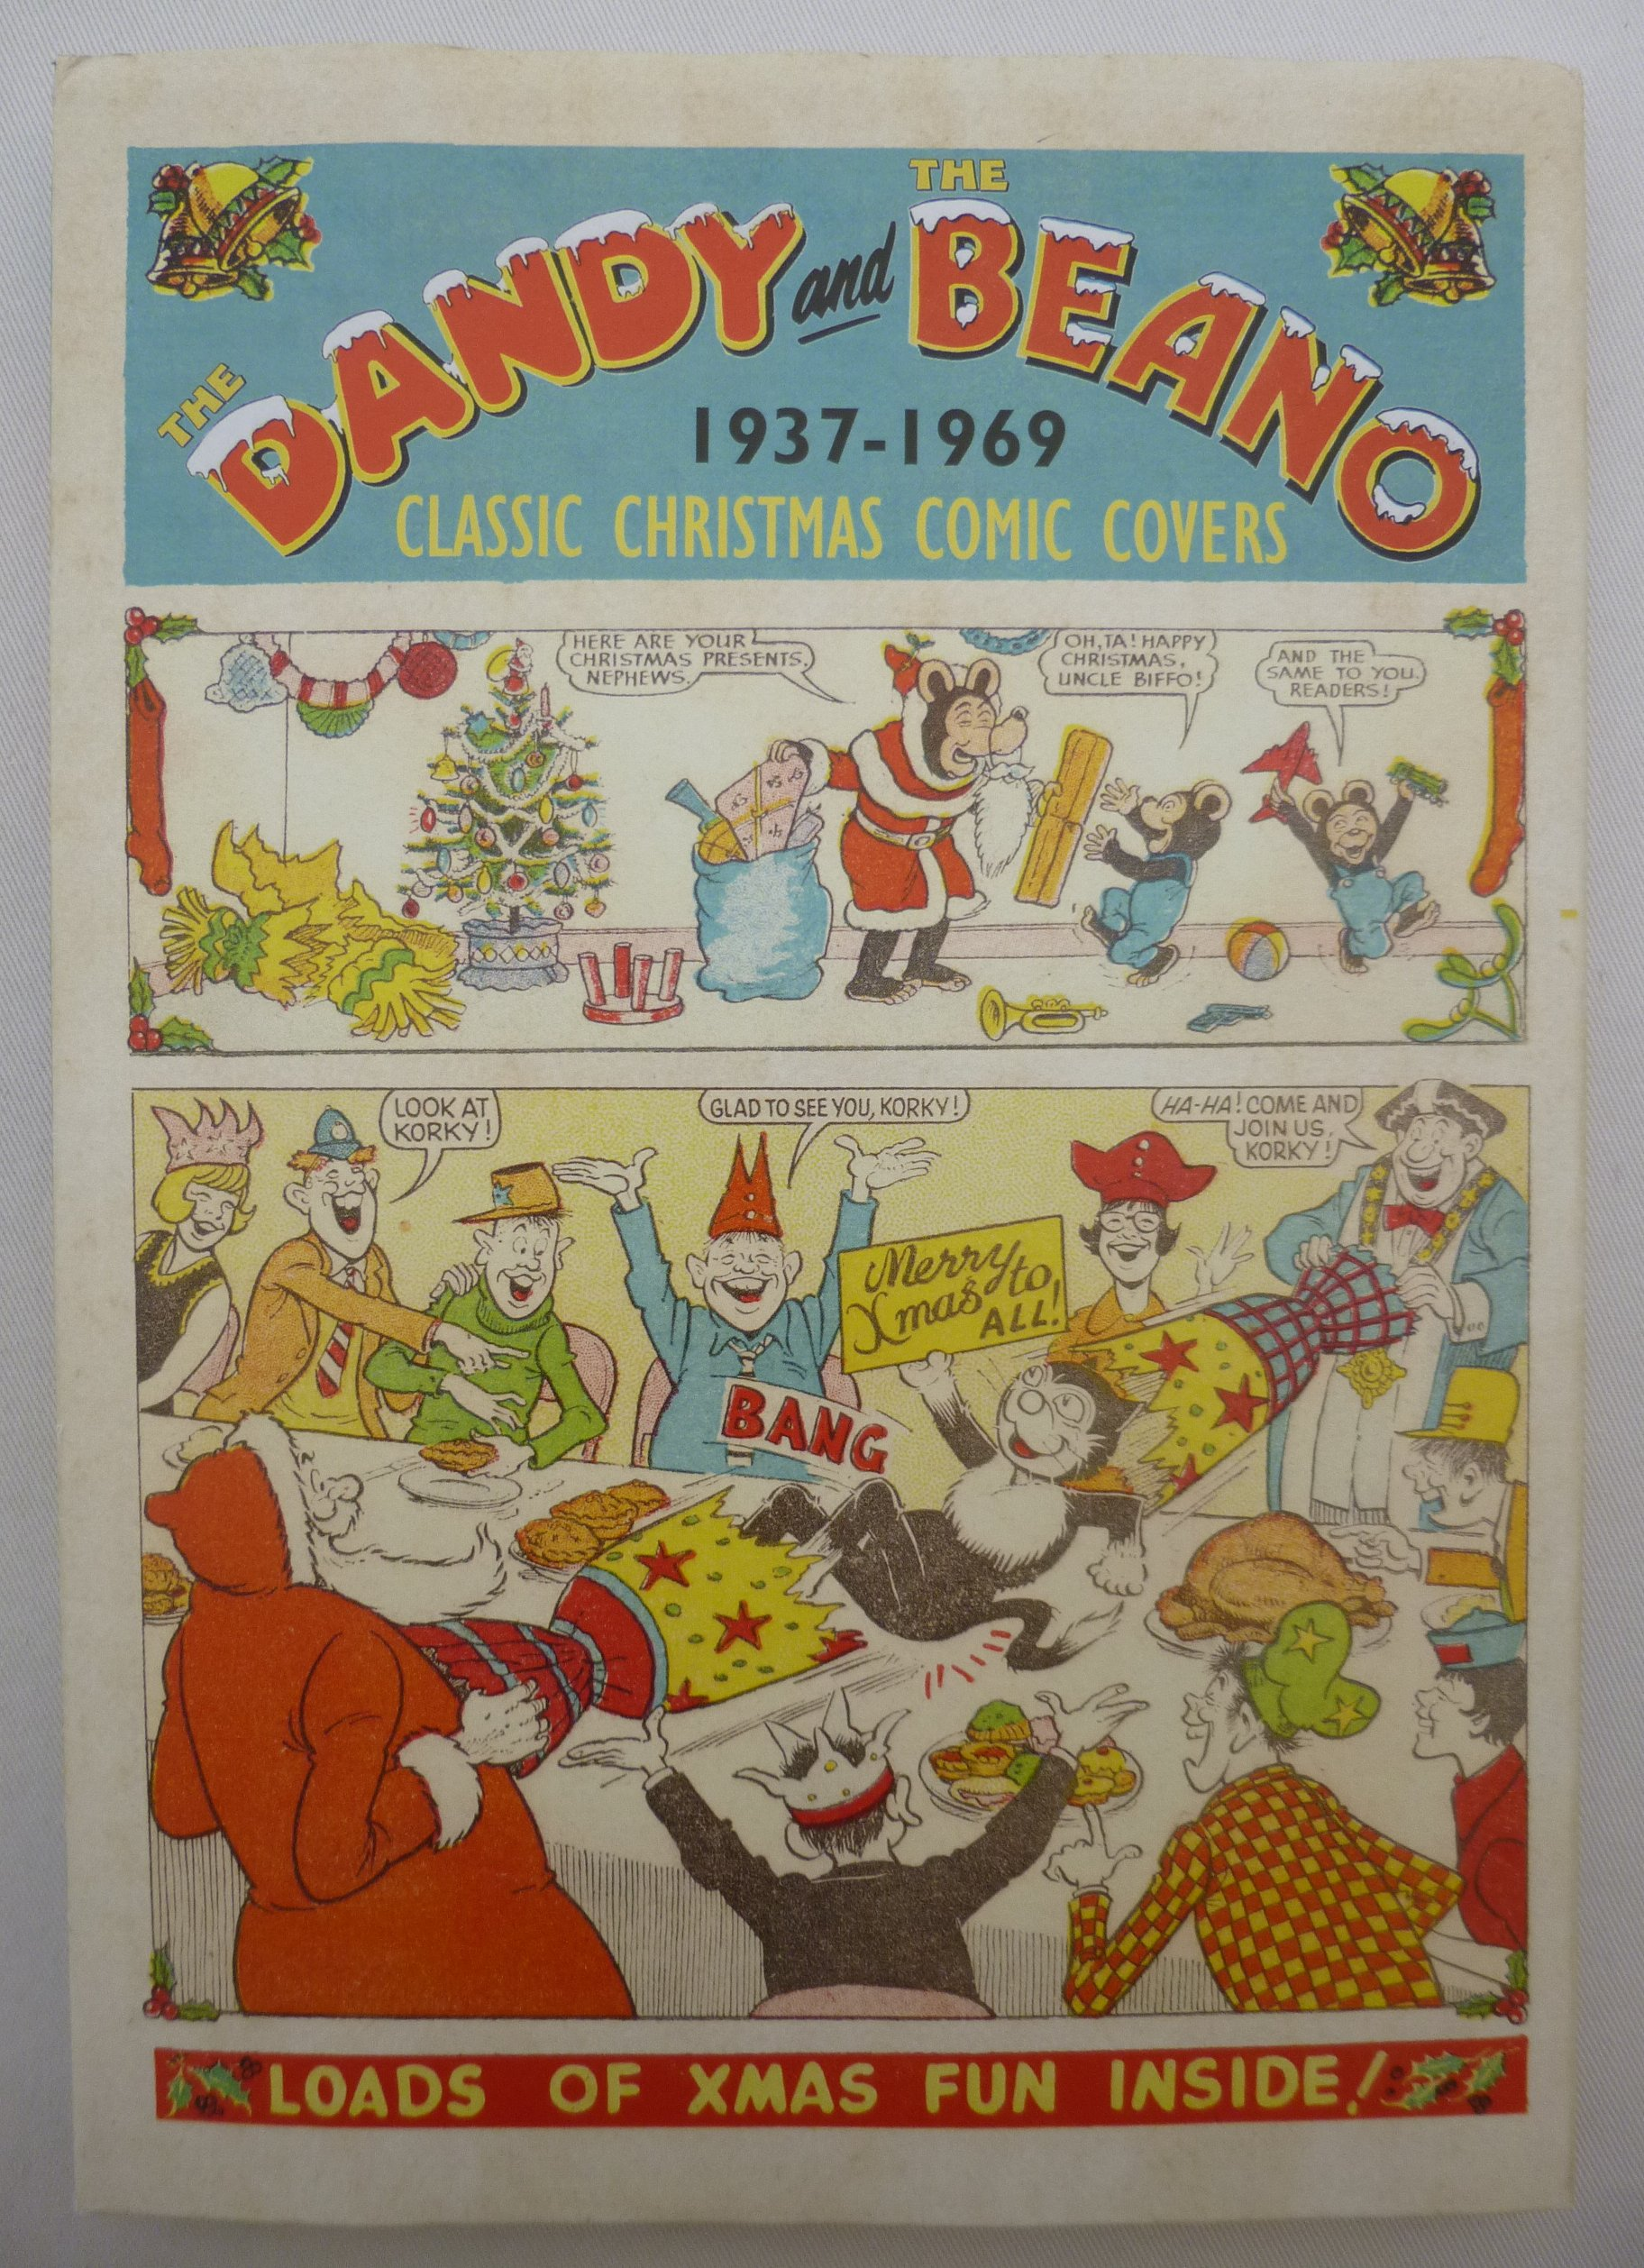 The Dandy and The Beano - Classic Christmas Comic Covers 1937-1969